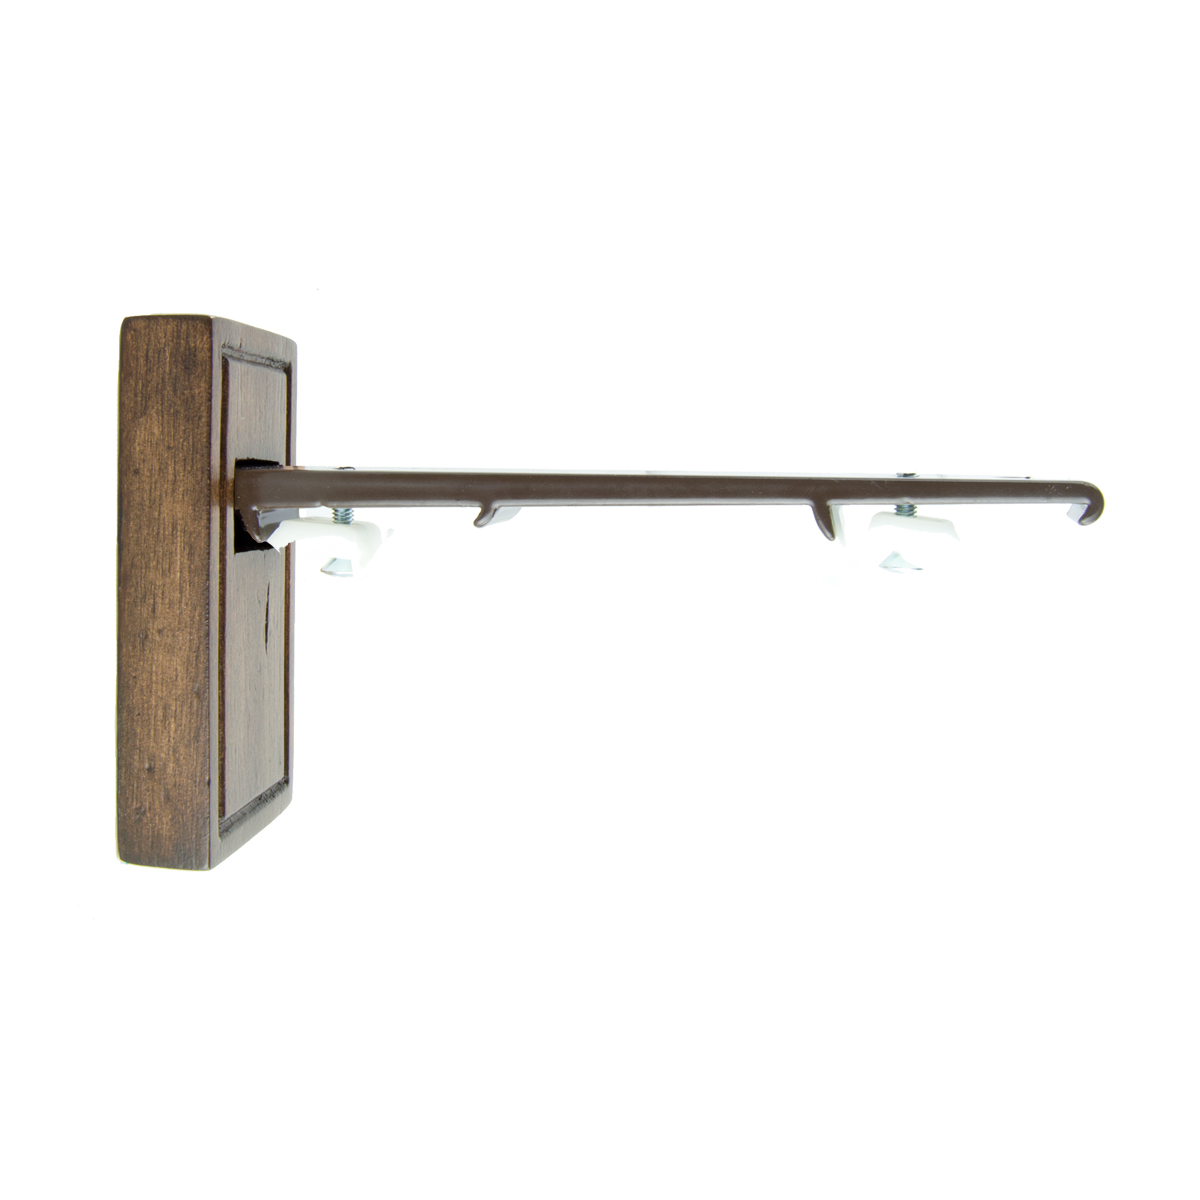 Traverse Bracket Double 2 Walnut